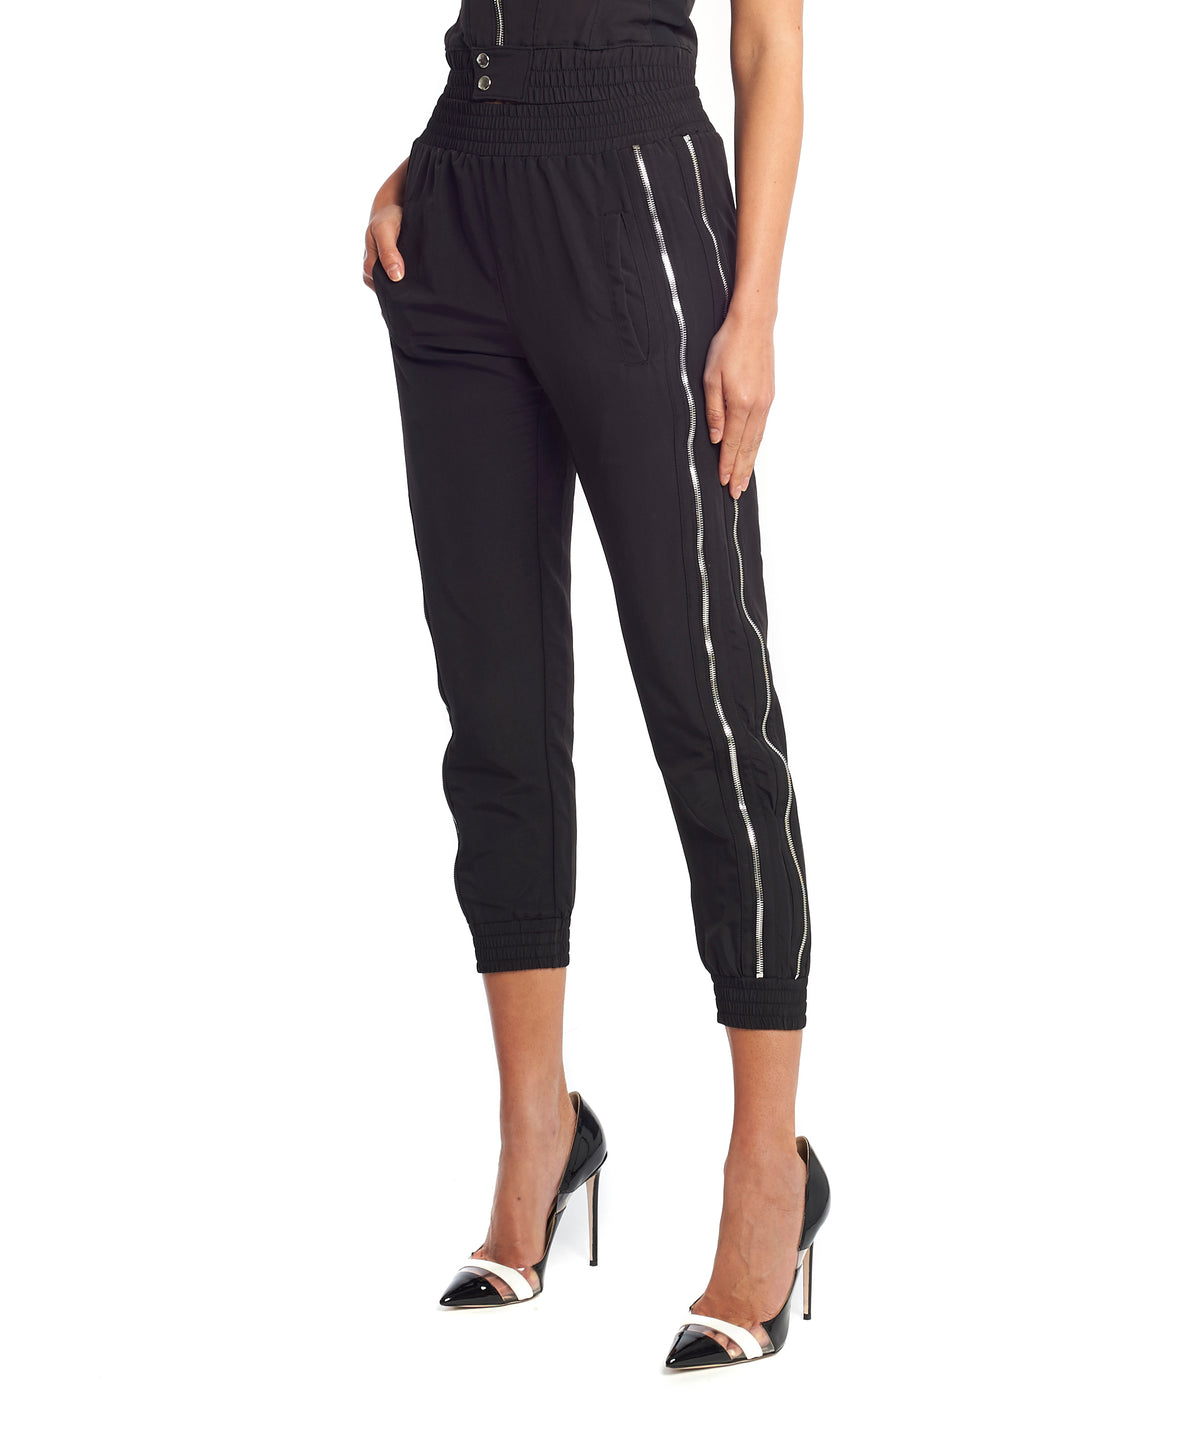 Rta Trackpants Women Black Sweatpants